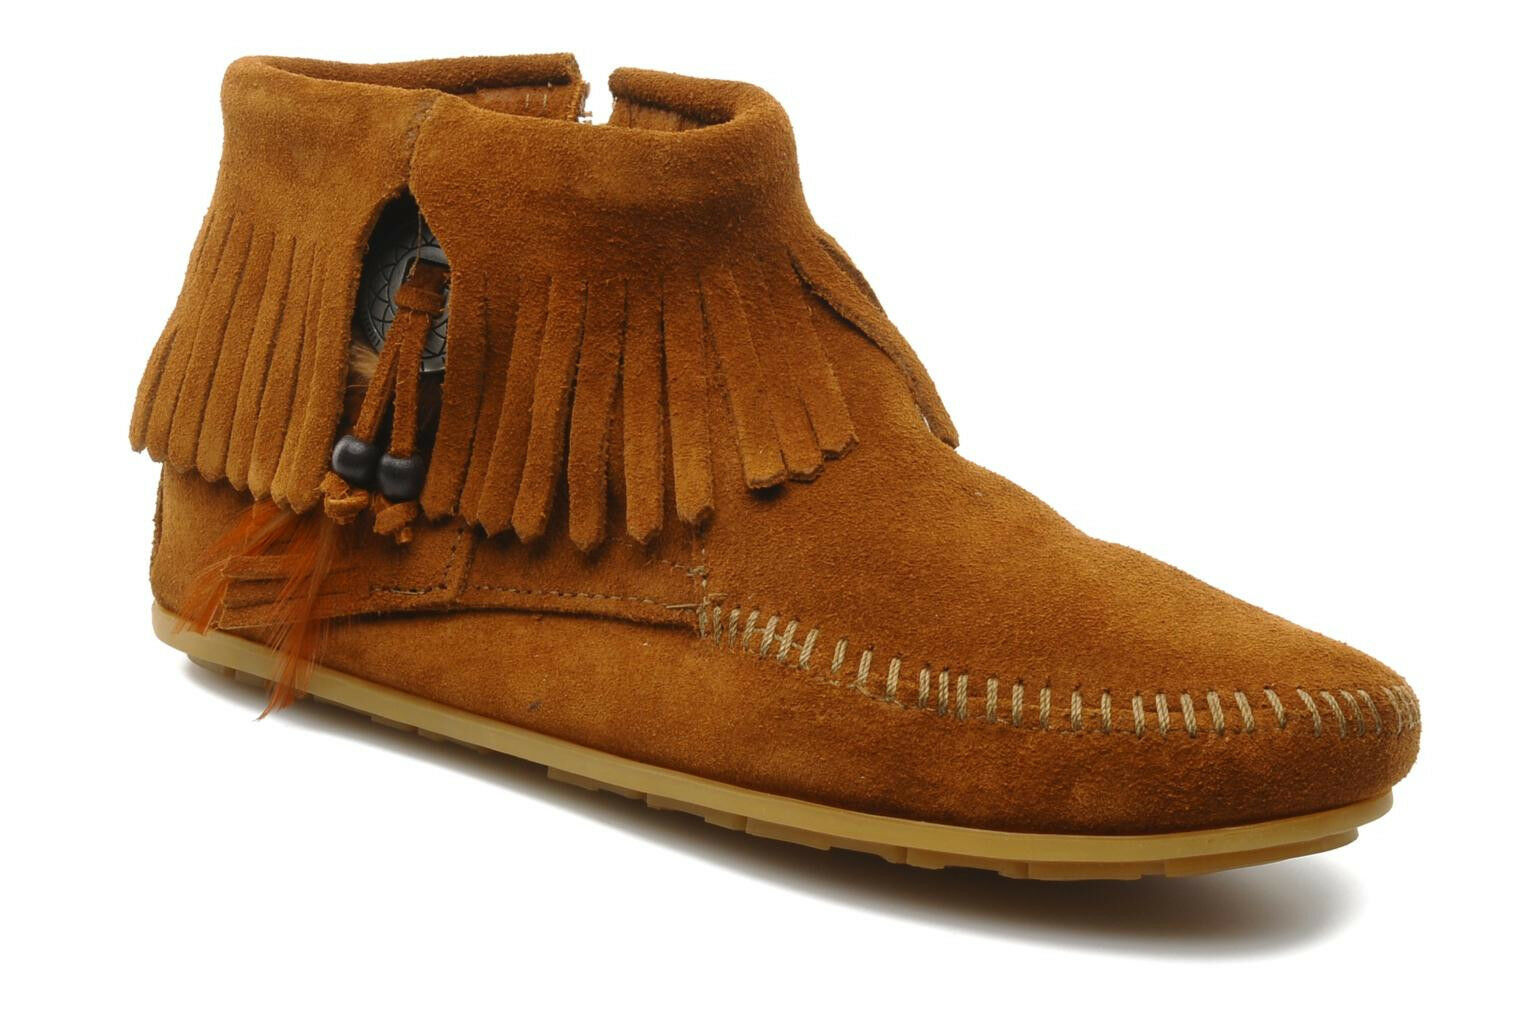 Original Minnetonka Conchofeather BT Gr. 39 Blogger, Moss, Boho